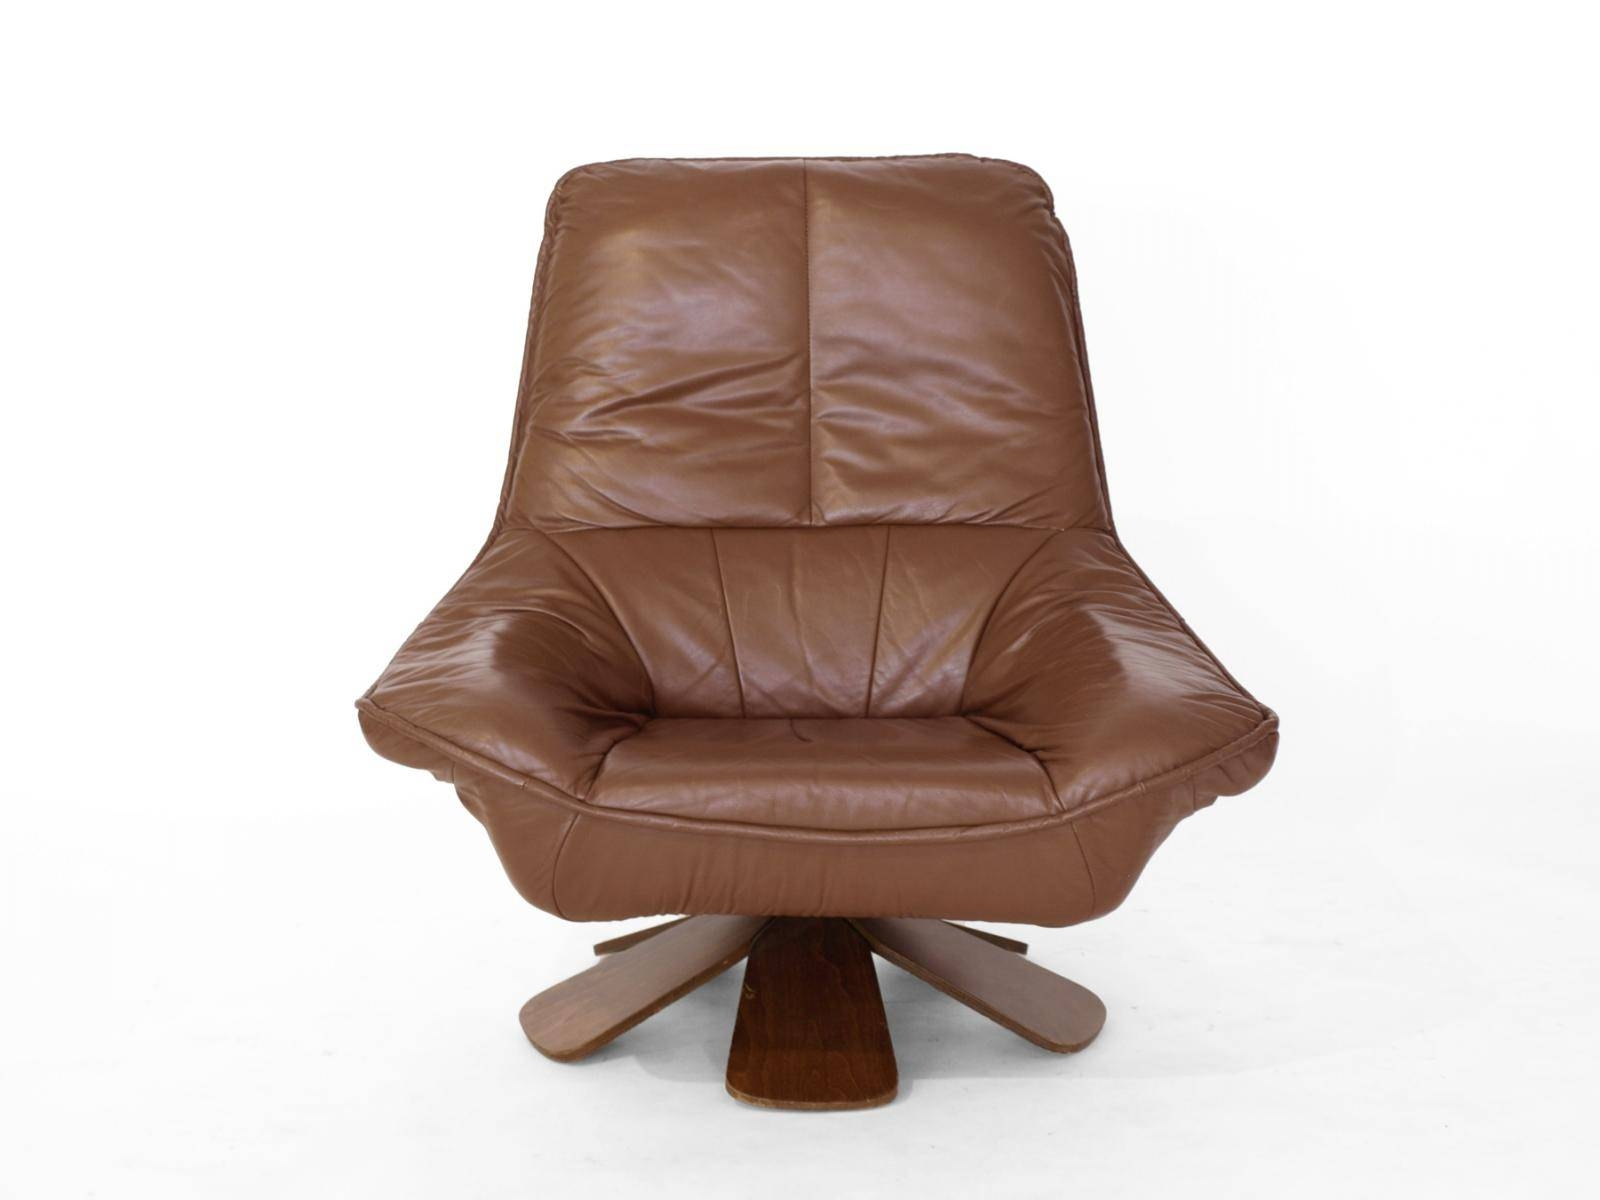 Vintage Leather Swivel Chair With Ottoman For Sale At Pamono for Vintage Leather Armchairs (Image 24 of 30)